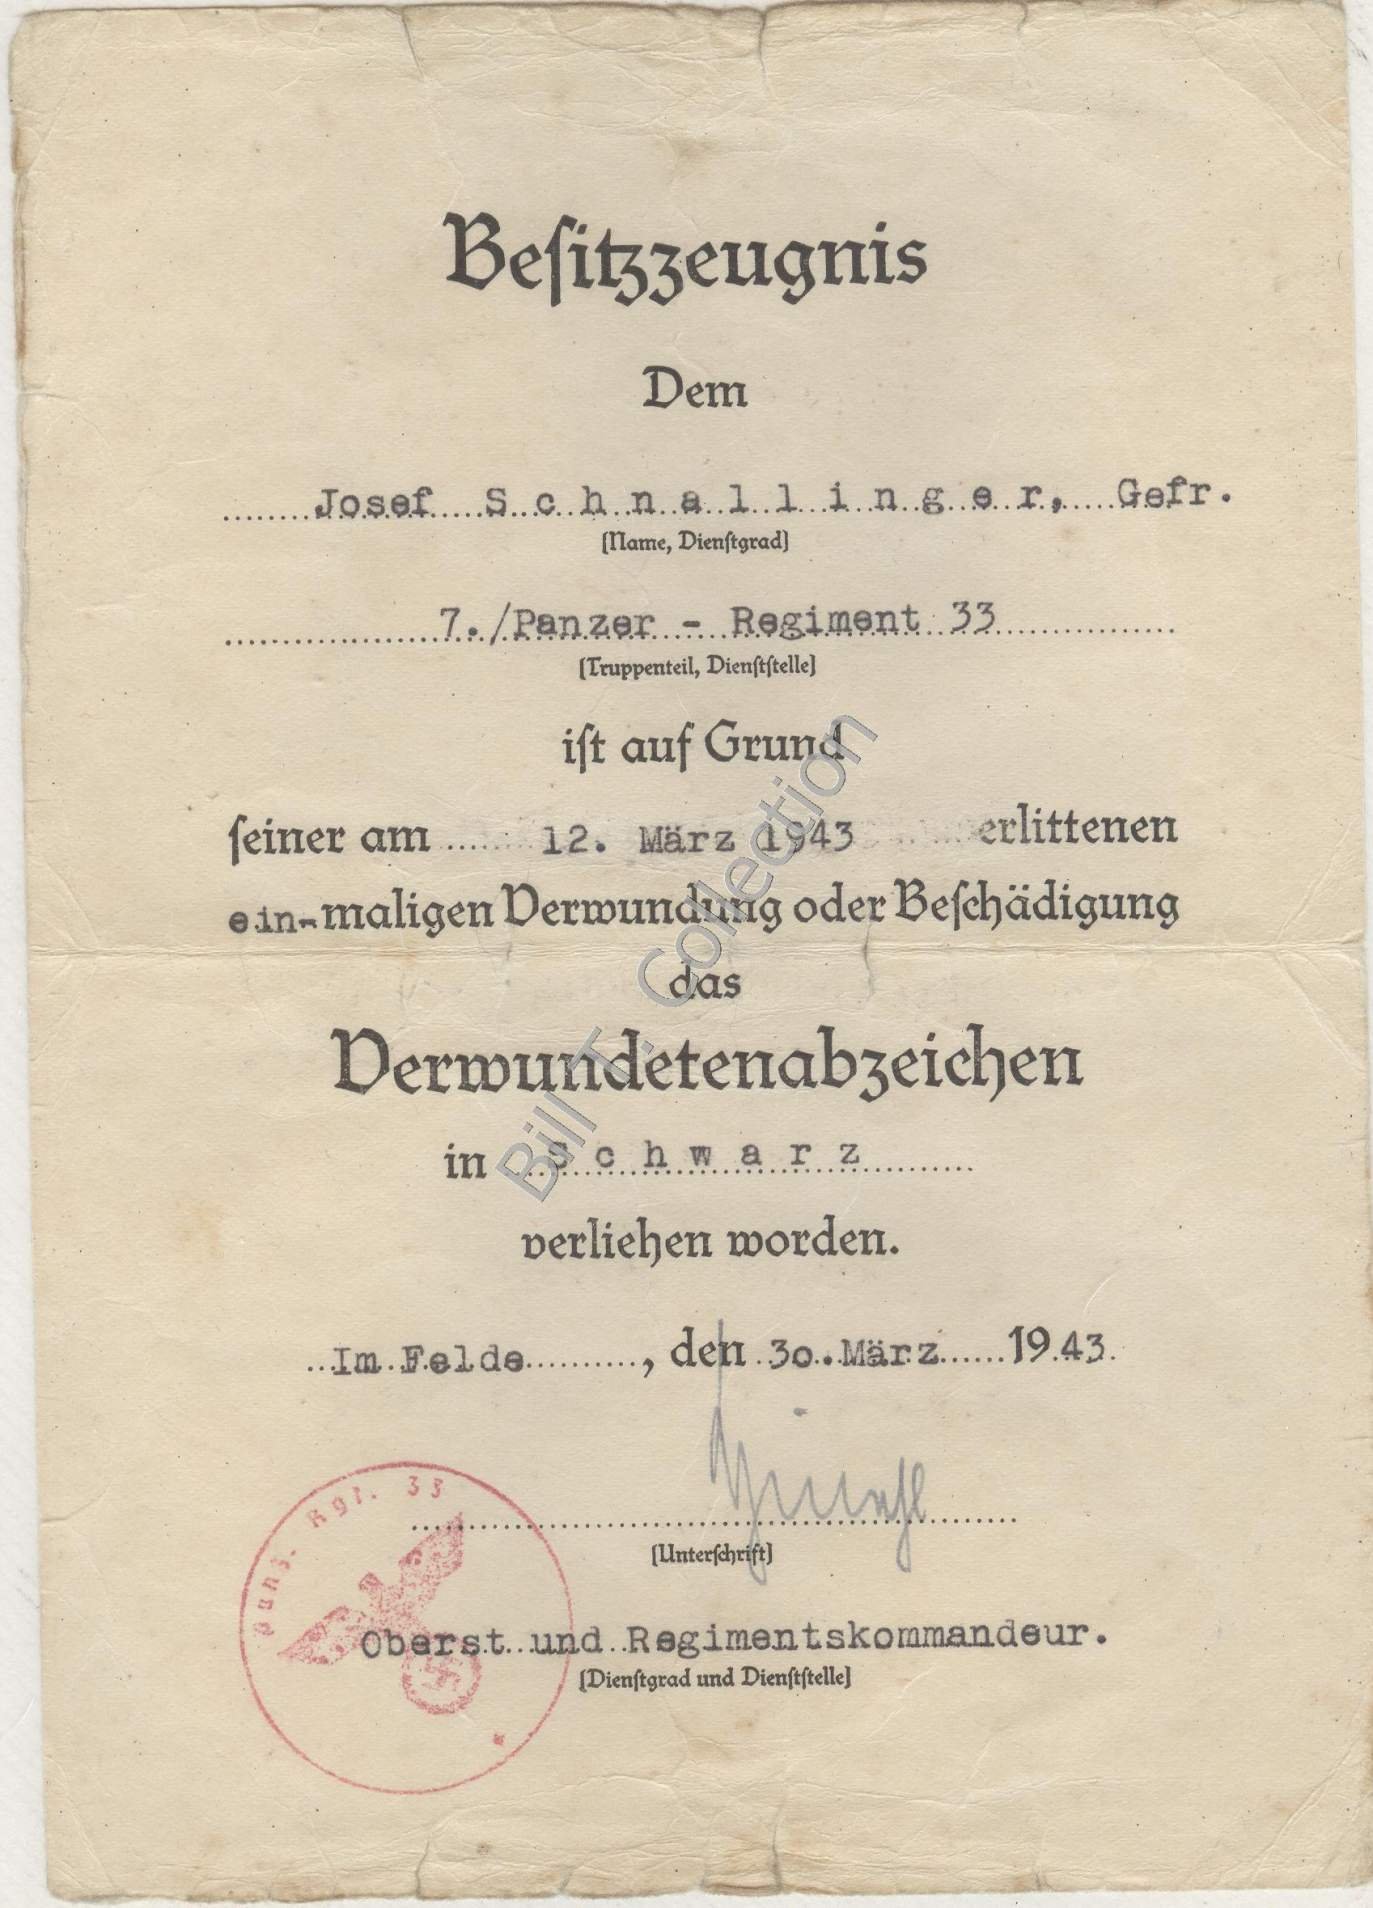 Share your Panzer Related Award Documents (Verleihungsurkunde) - Page 2